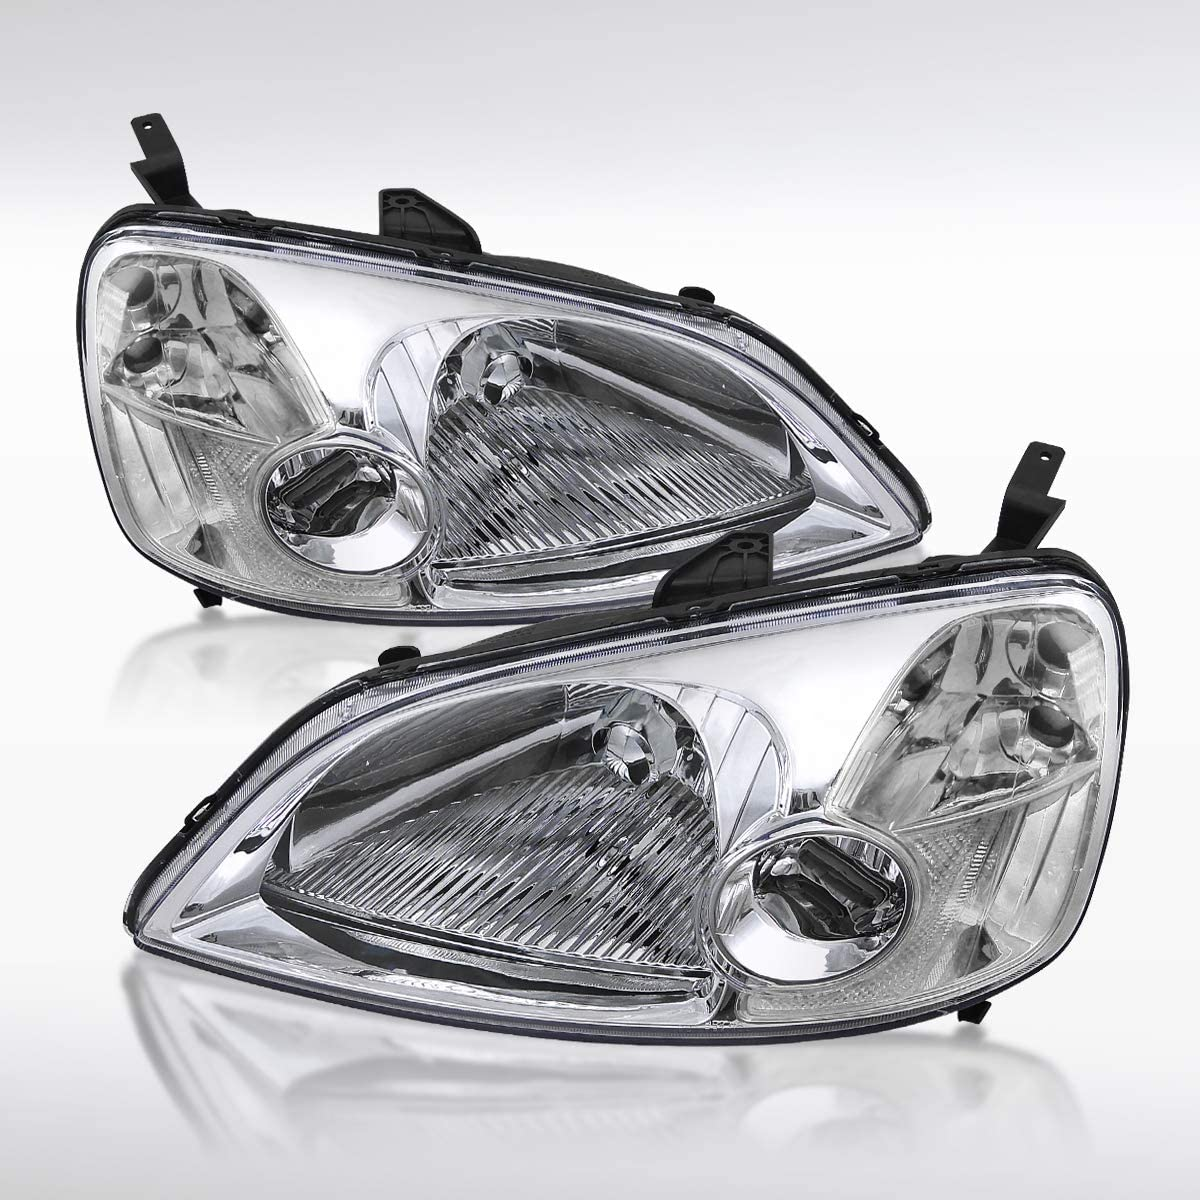 Autozensation for Honda Civic Smoke Tinted Lens OEM Style Headlights Clear Reflector